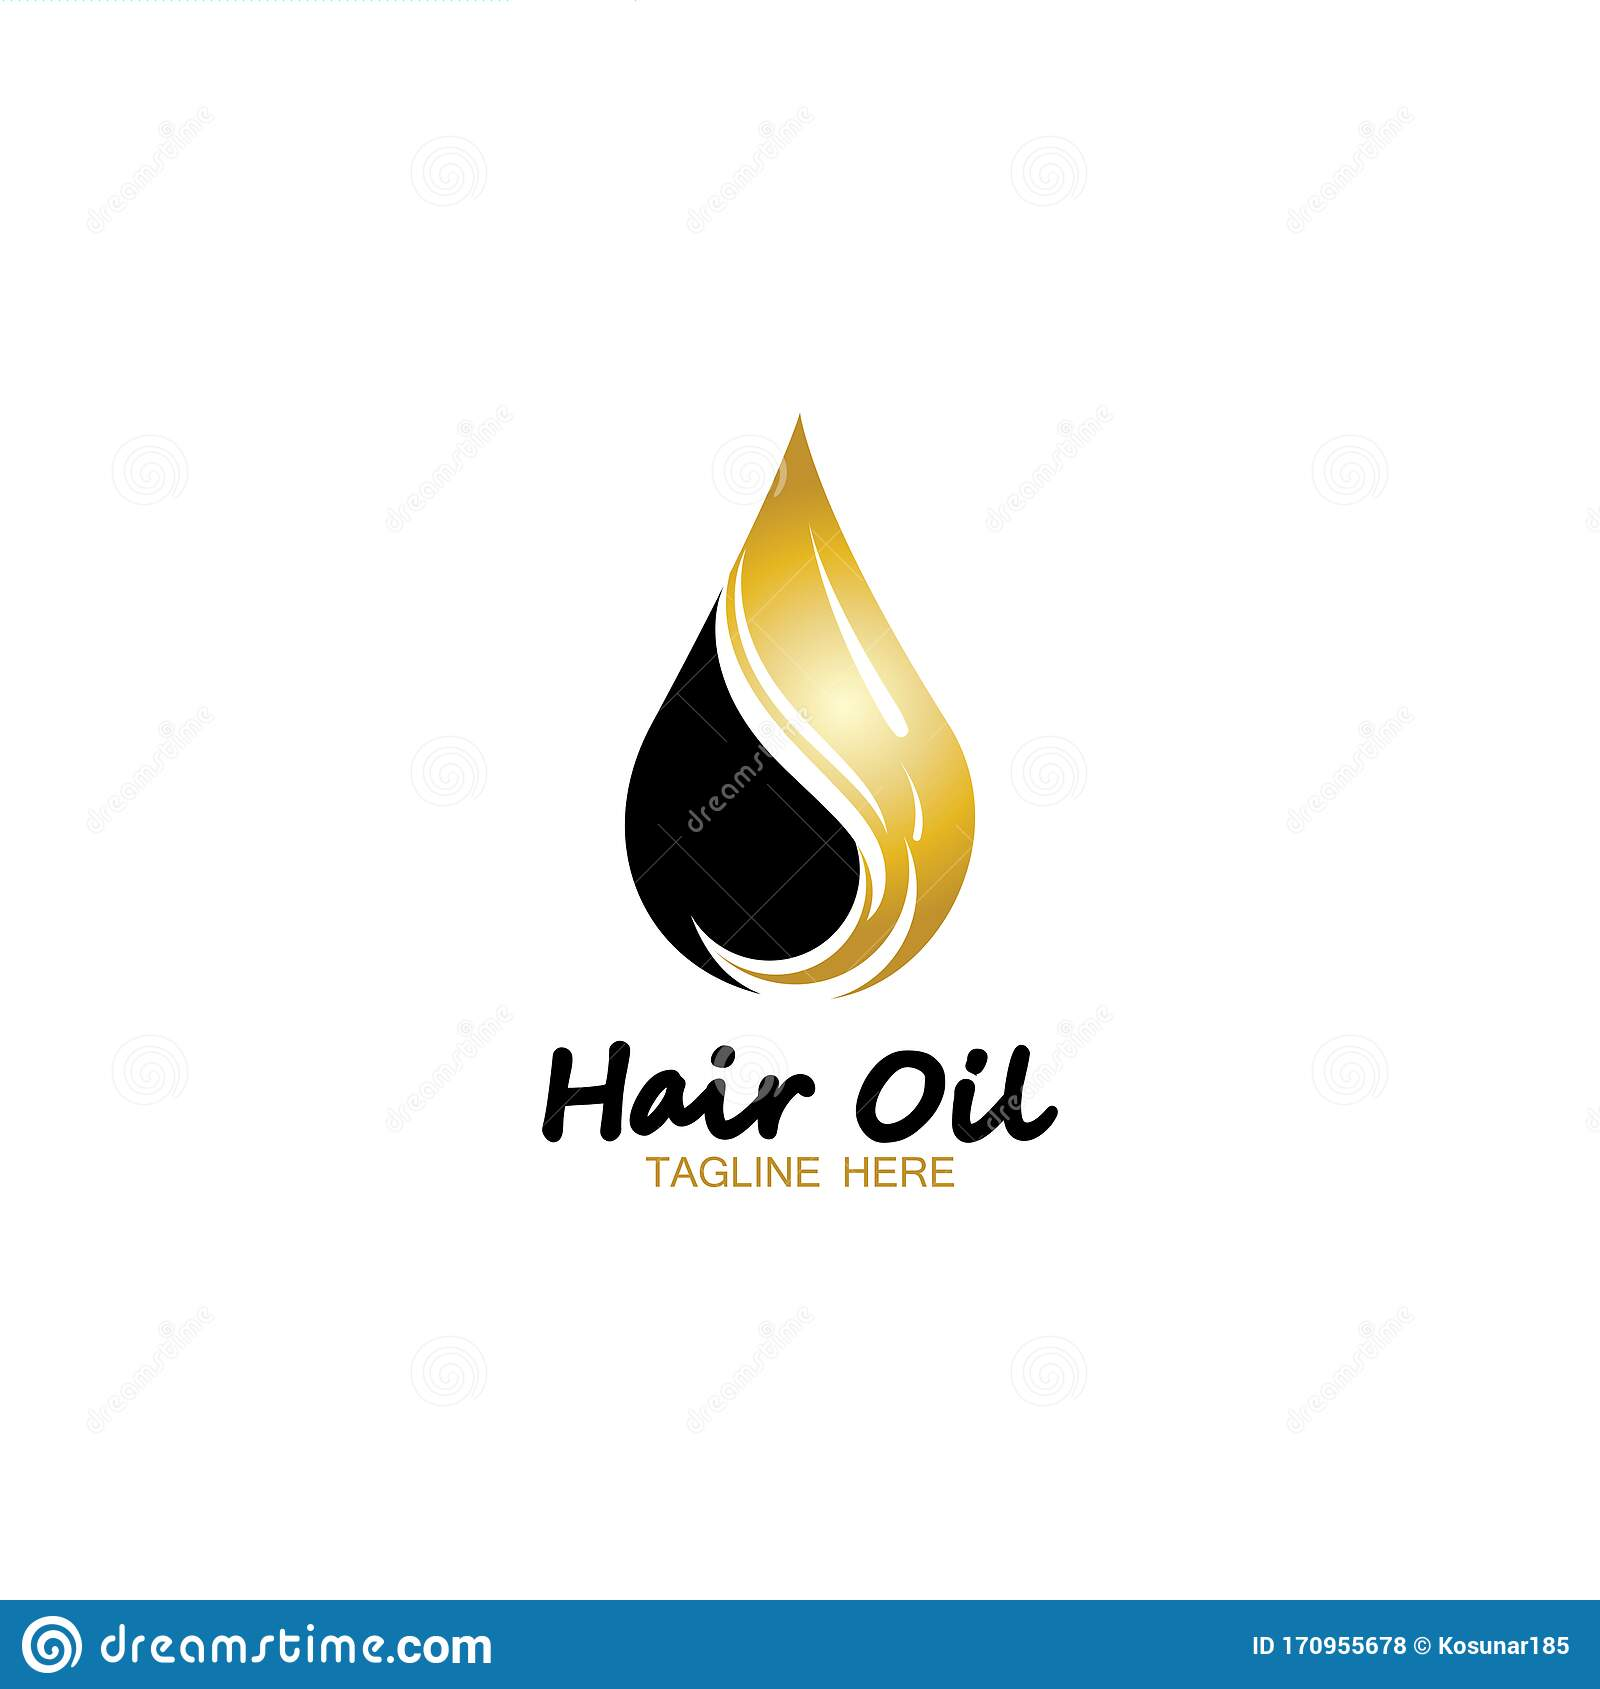 Hair Oil Essential Logo With Drop Oil And Hair Logo Symbol Vector Stock Vector Illustration Of Illustration Healthy 170955678